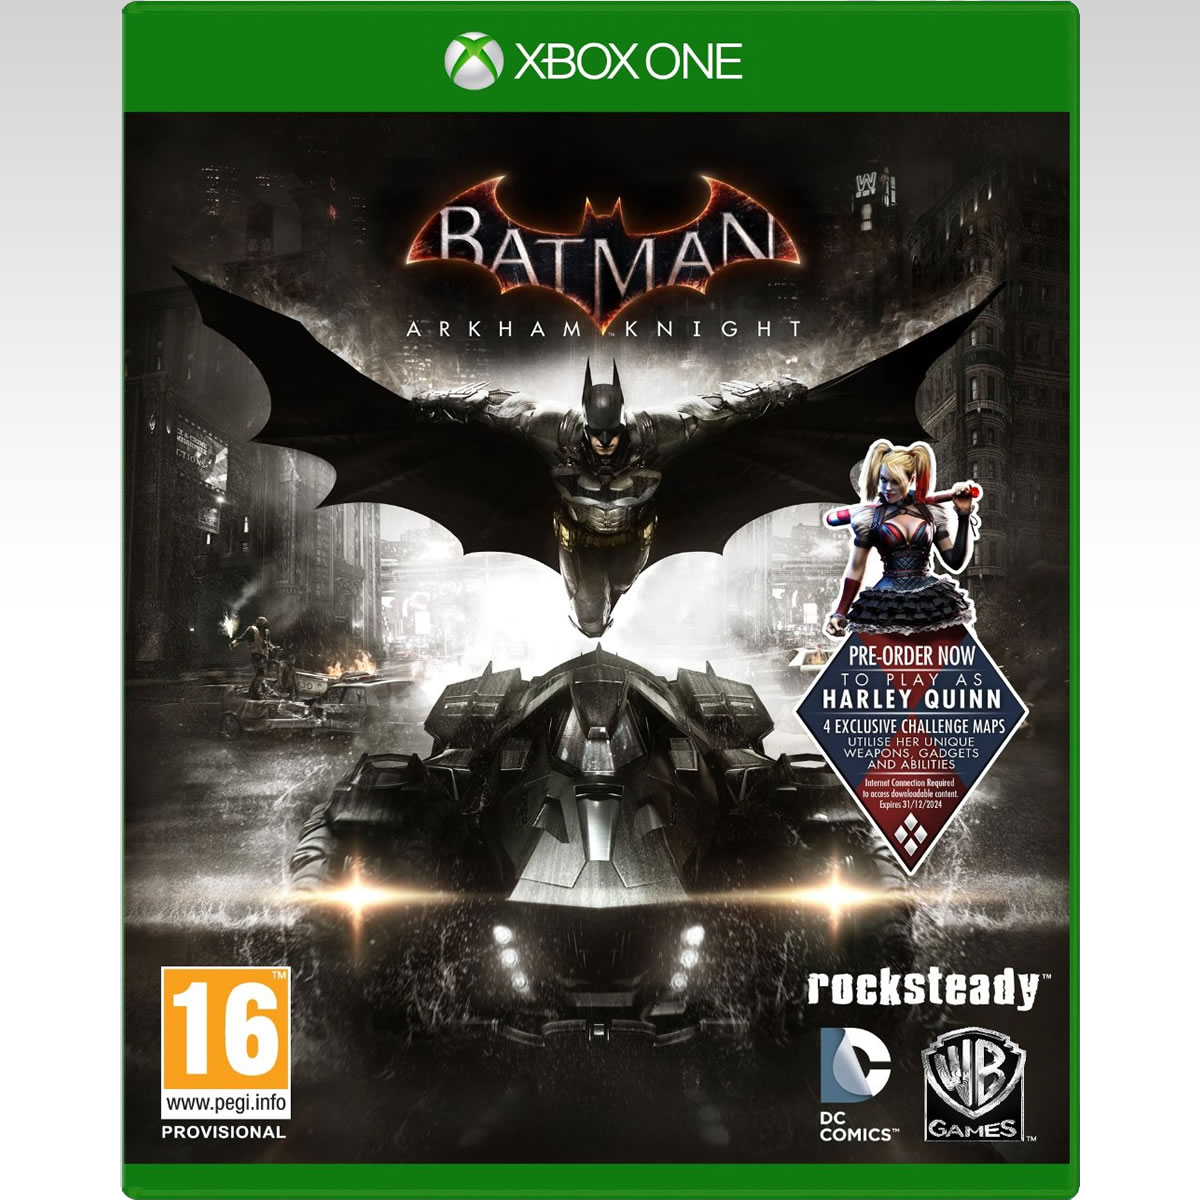 BATMAN: ARKHAM KNIGHT (XBOX ONE)